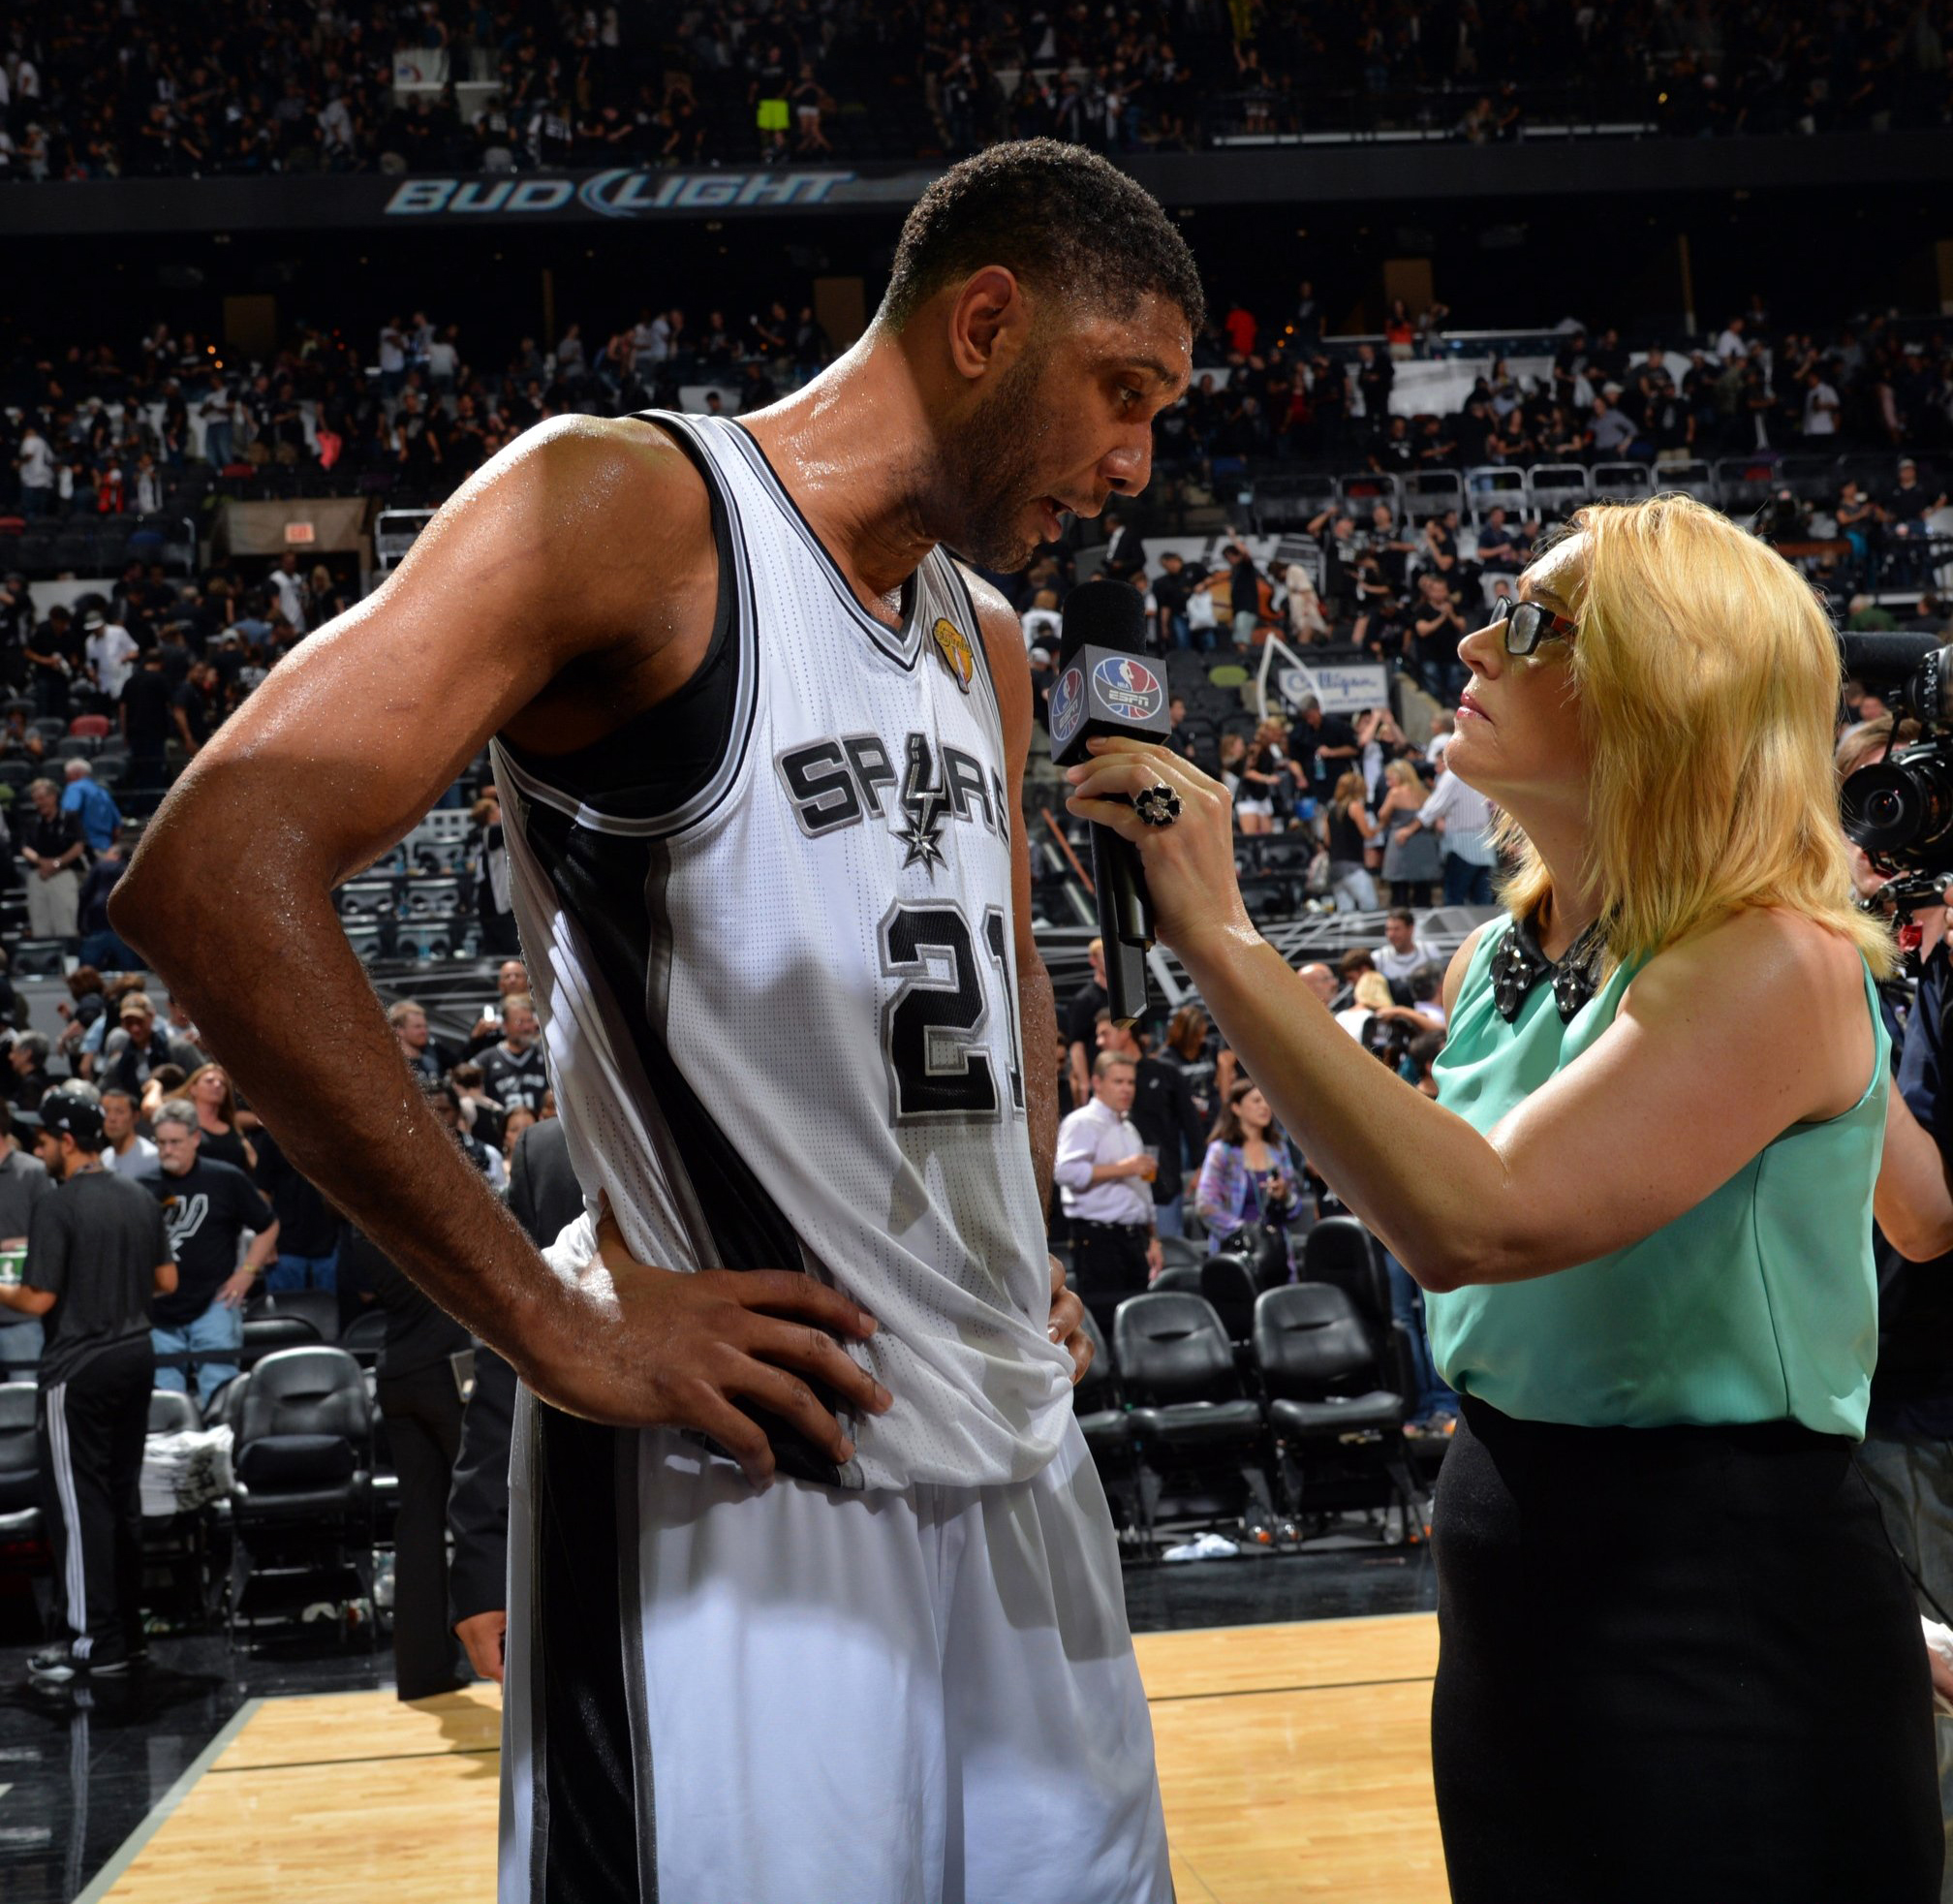 Tim Duncan #21 of the San Antonio Spurs speaks with the media after the game against the Miami Heat during Game 1 of the 2014 NBA Finals  in San Antonio on June 5, 2014.